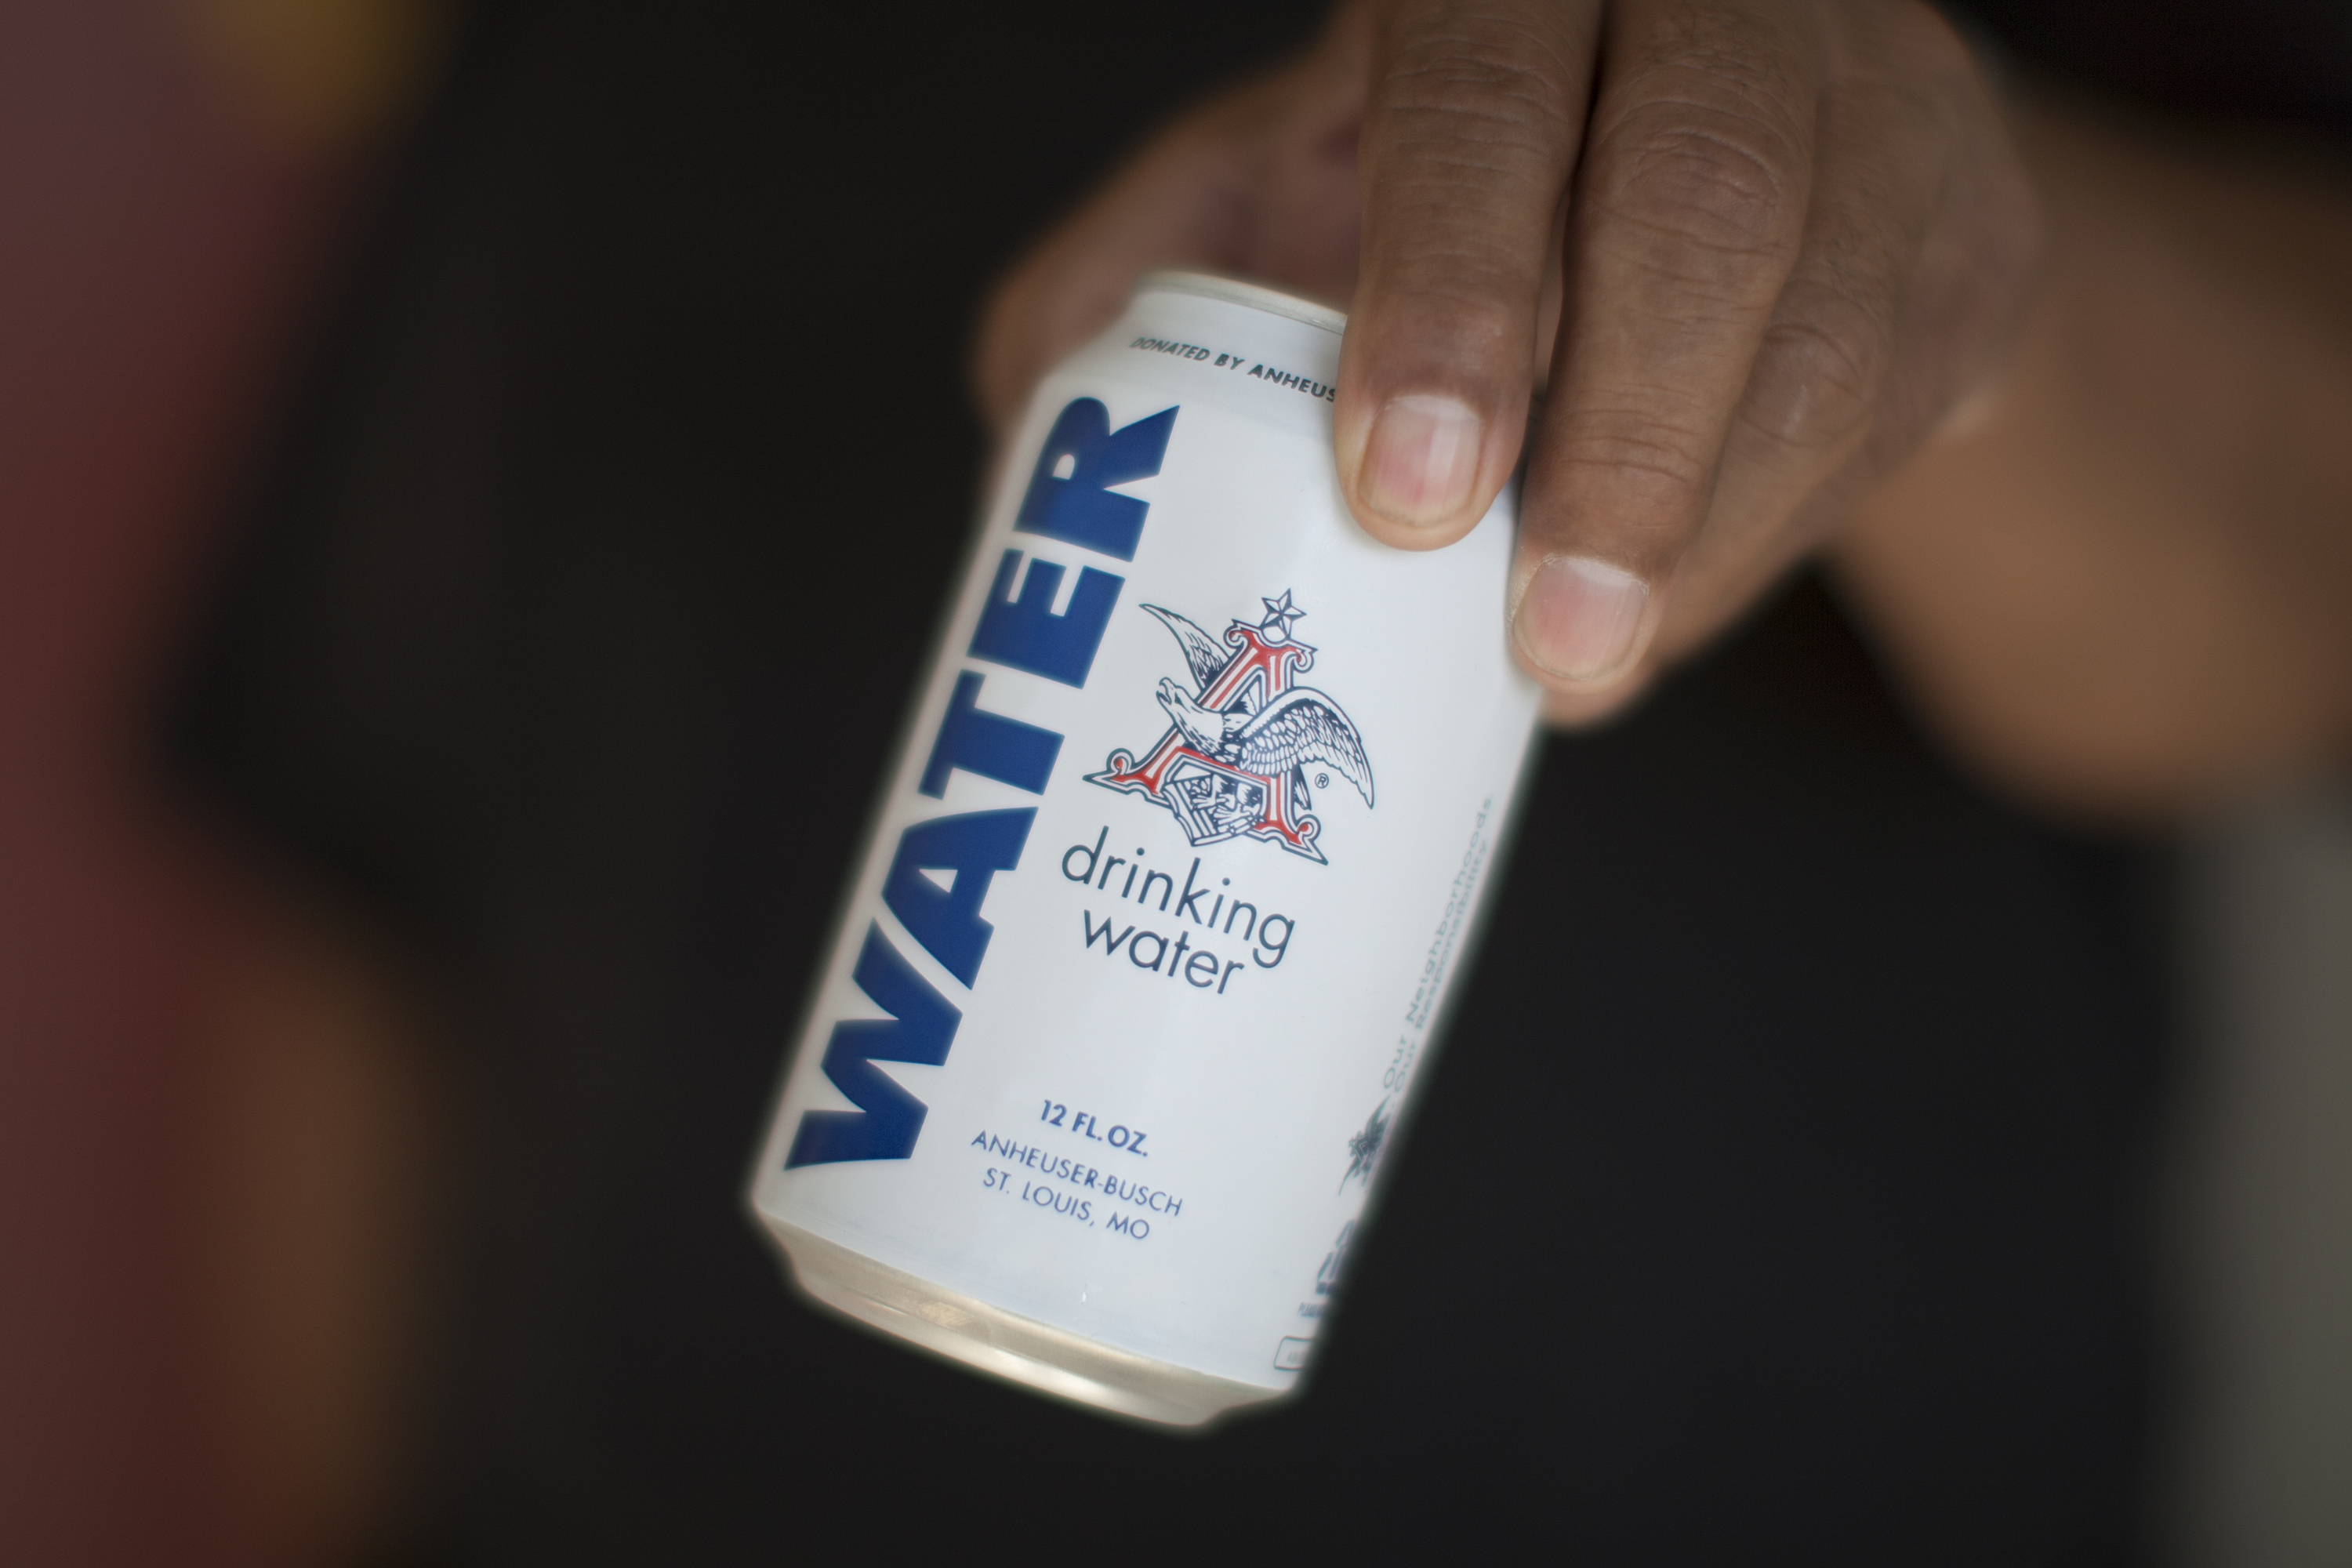 A can of Anheuser-Busch drinking water.